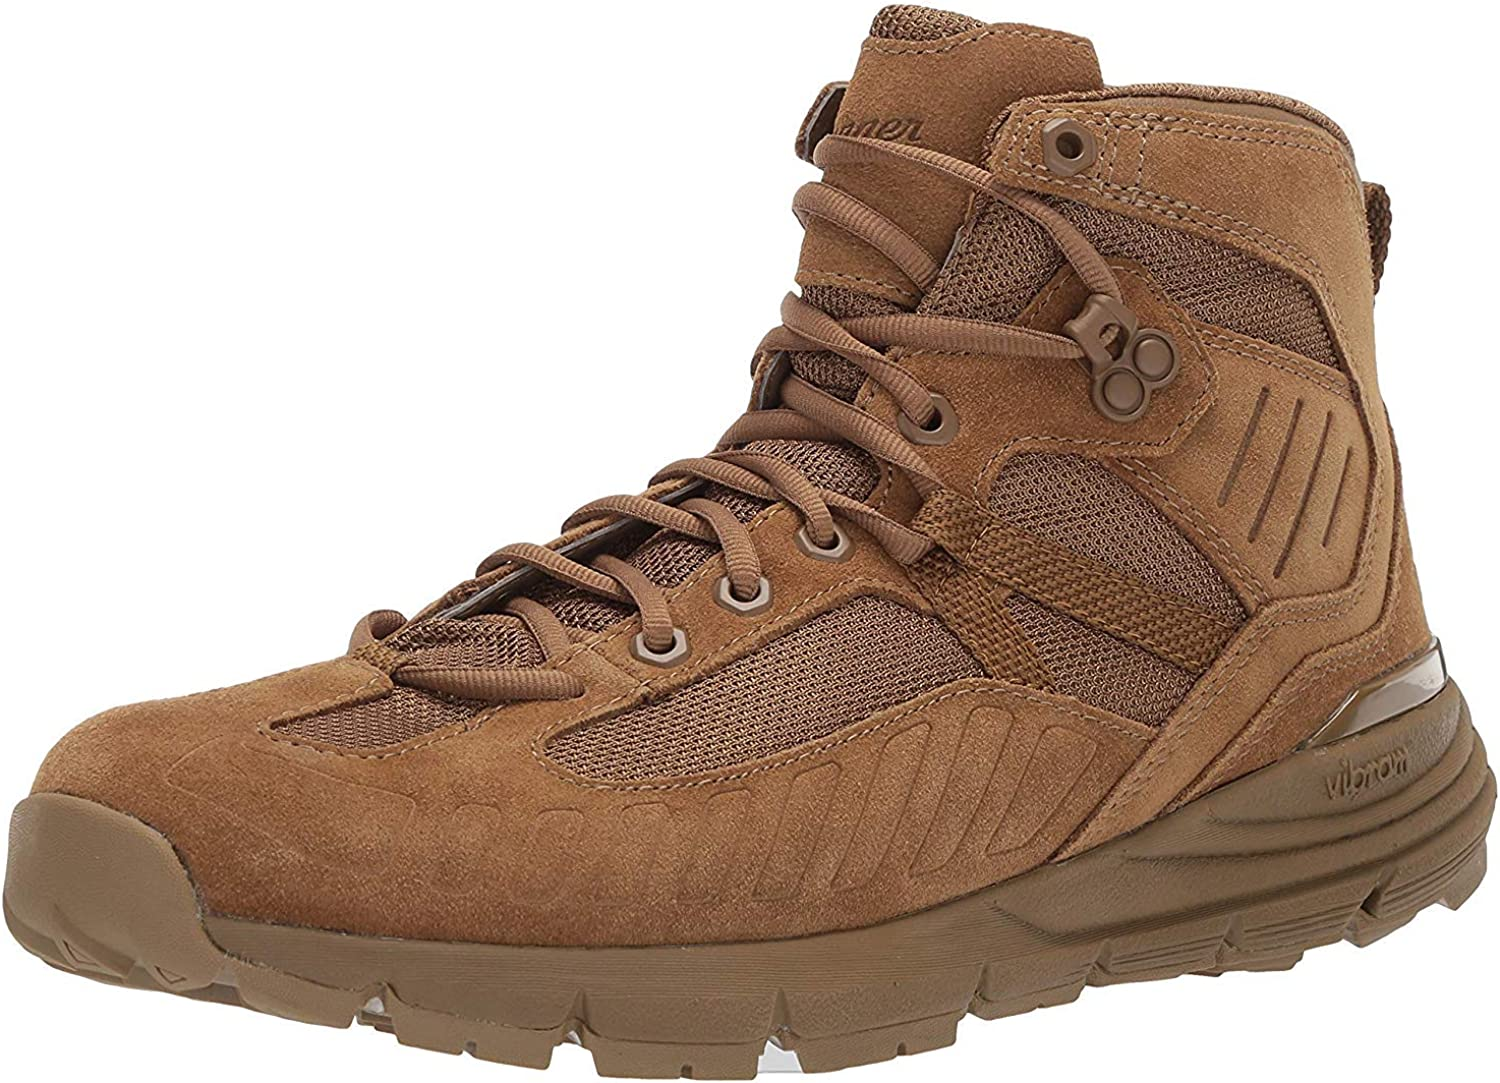 "Danner Men's FullBore 4.5"" Military and Tactical Boot: Shoes"